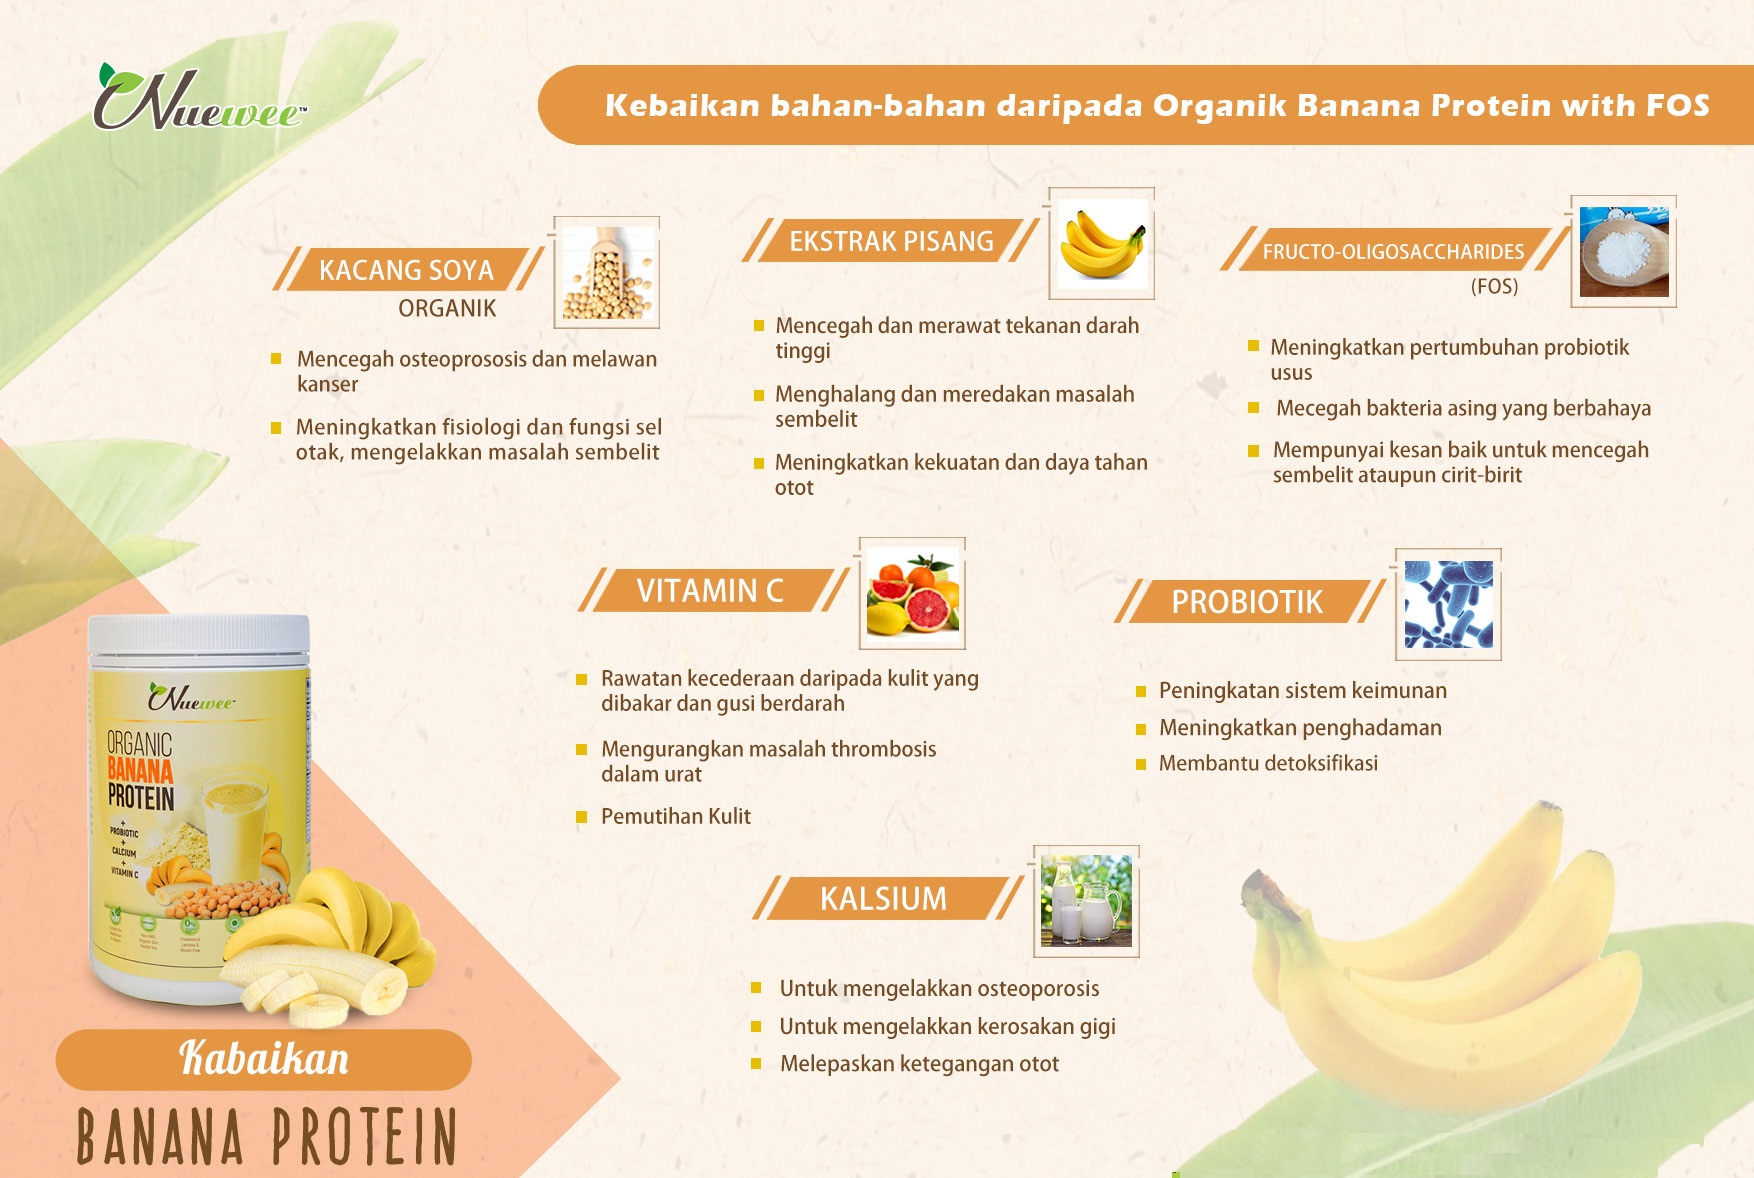 Ingredients-Nuewee-Organic-Banana-Protein-with-FOS-A.jpg